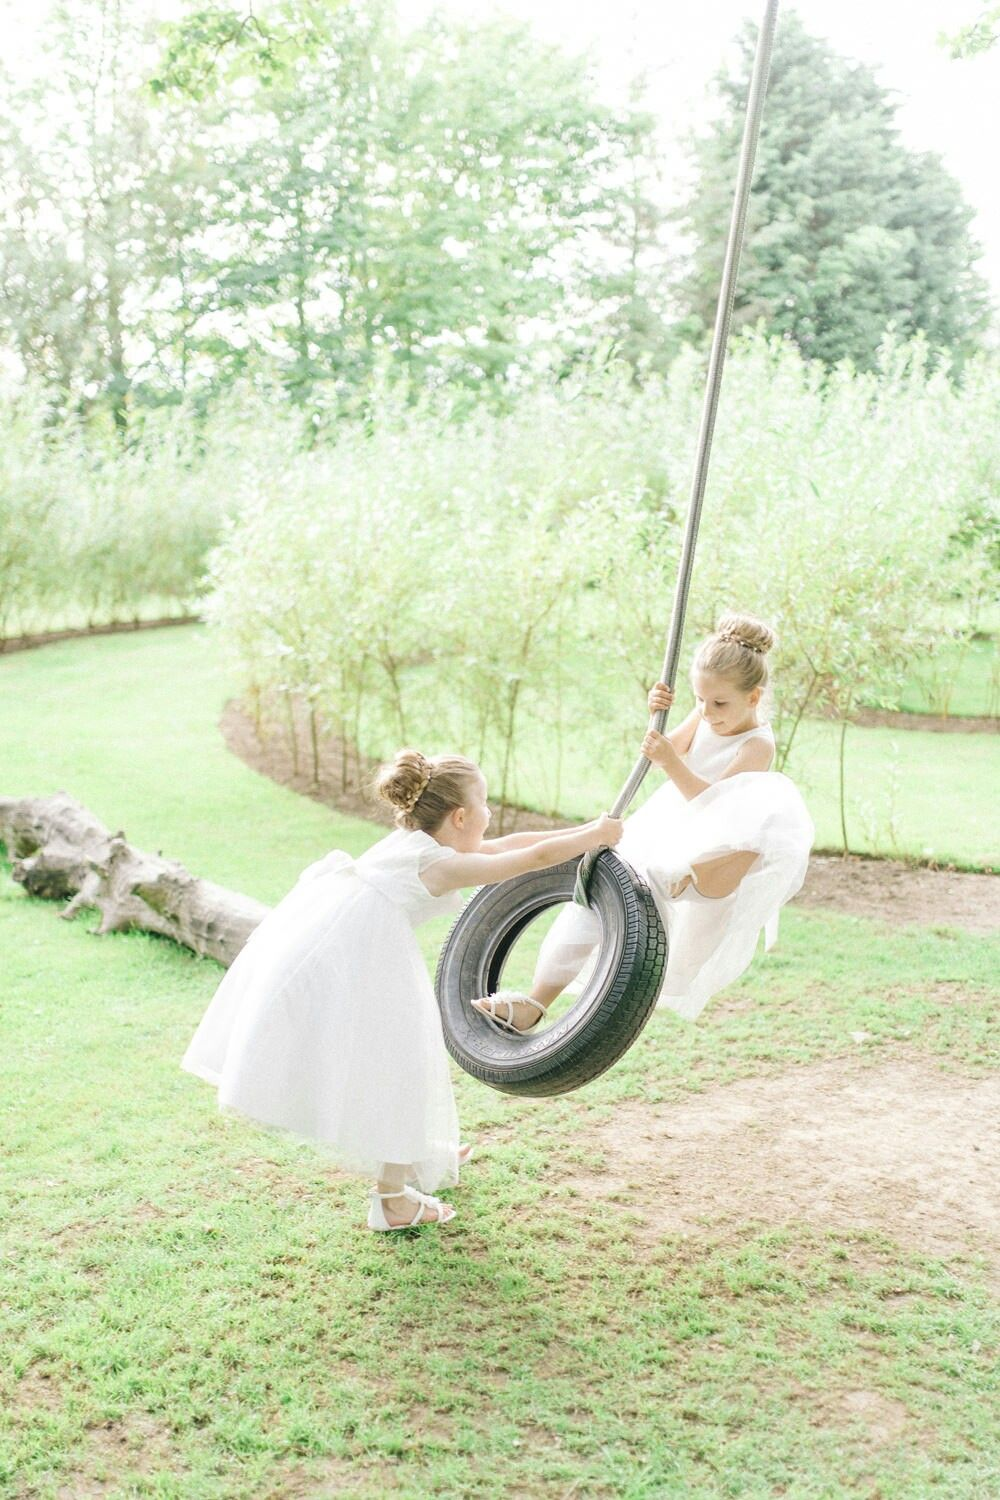 Pin by magdalena on wedding ideas pinterest wedding and weddings